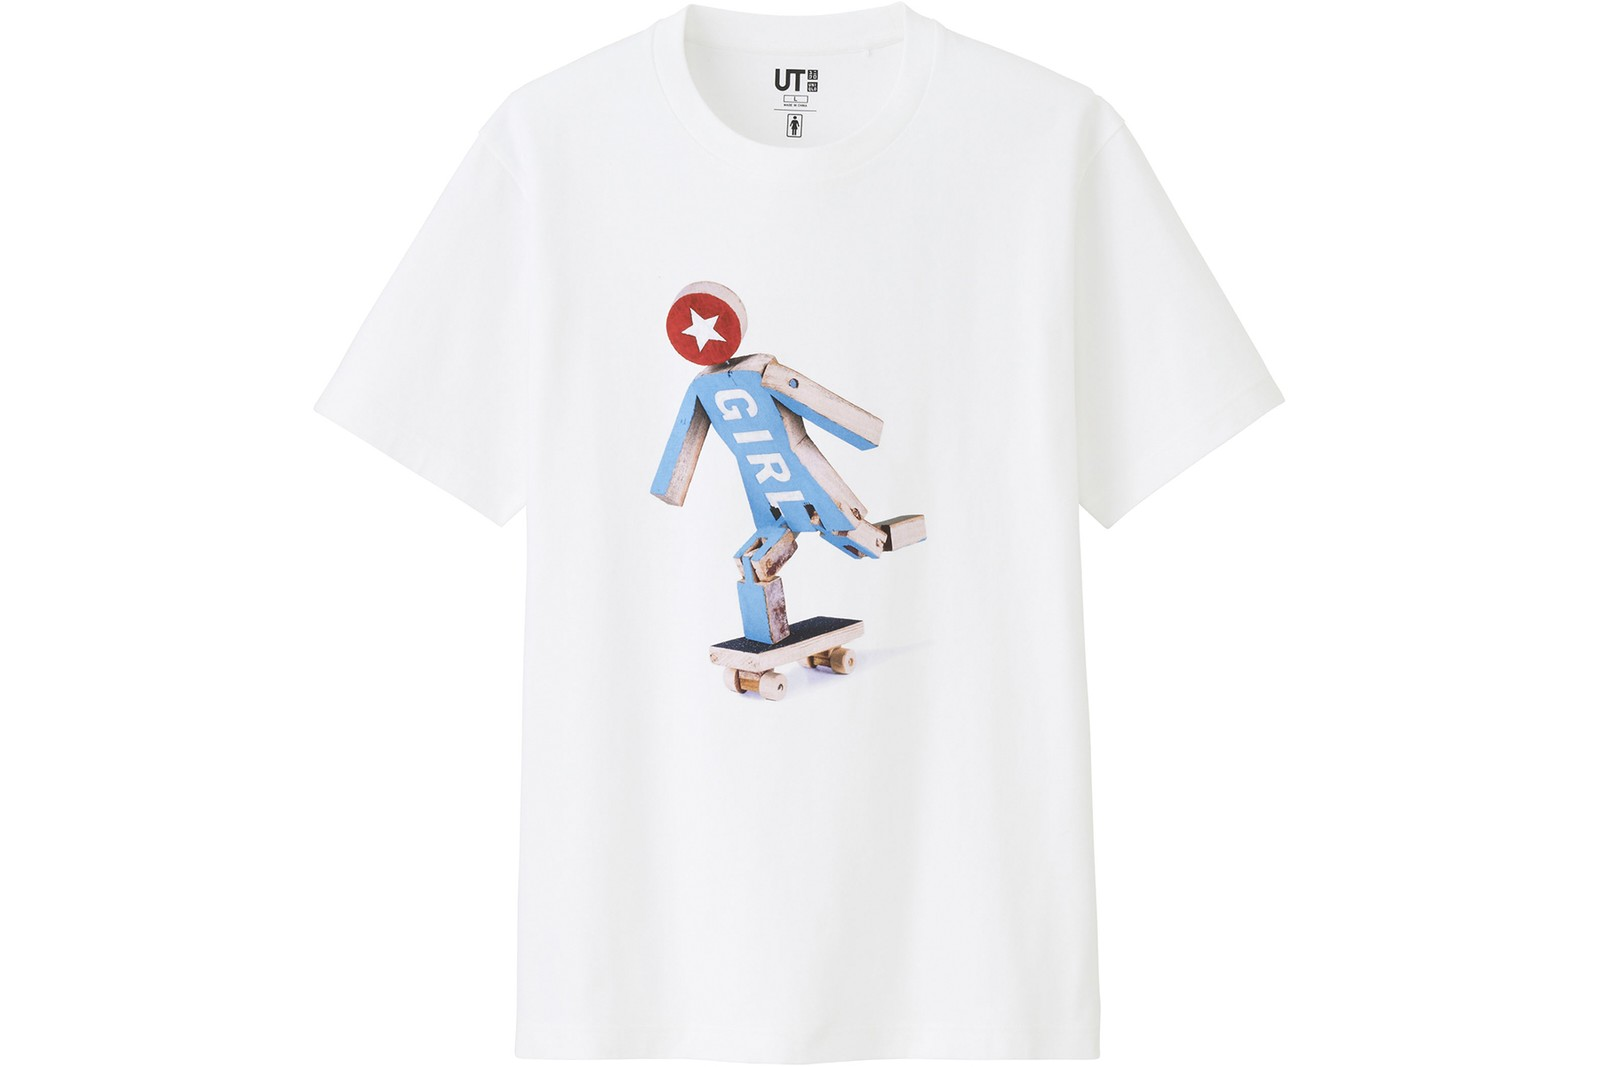 UNIQLO UT Girl Skateboards  ユニクロ UT ガール・スケートボード コラボコレクション 発表 Griffin Gass Rick McCrank Tyler Pacheco Andrew Brophy Rick Howard Niels Bennet Mike Carroll